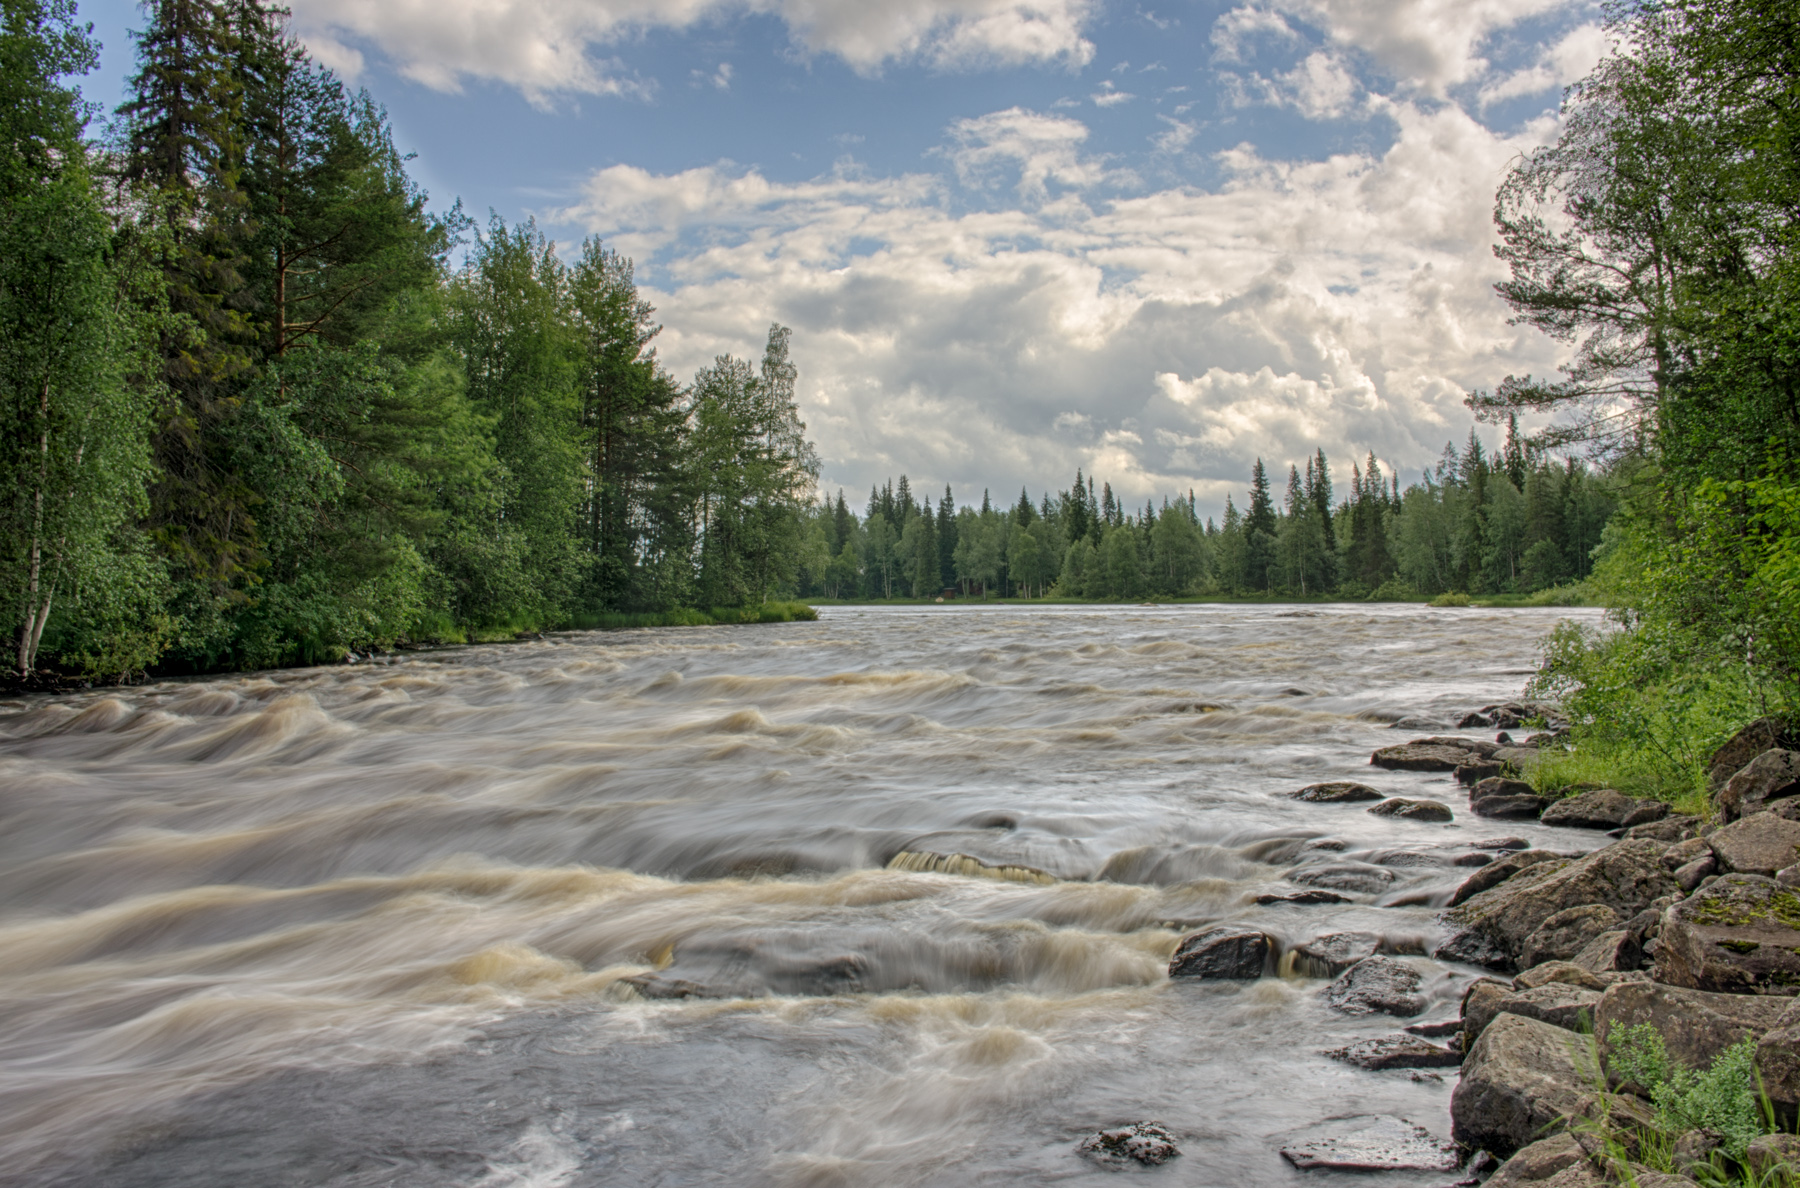 20130703-_IGP3719_HDR